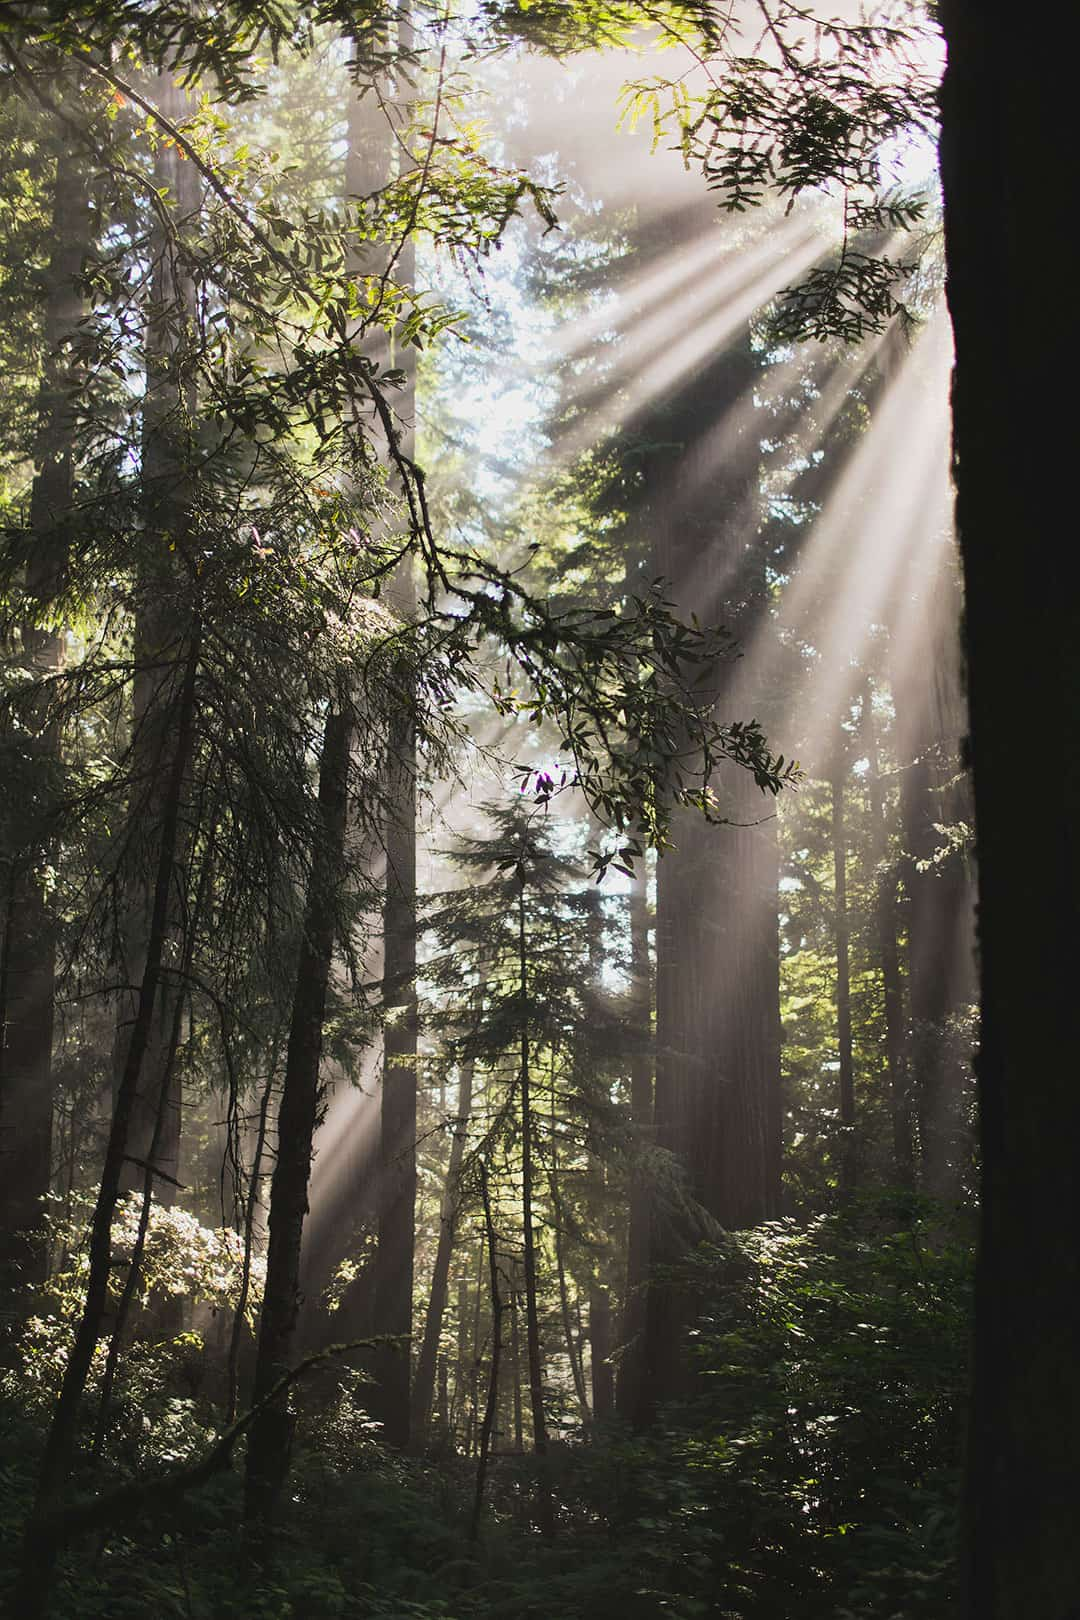 Redwood National Park - Least Visited National Park in US